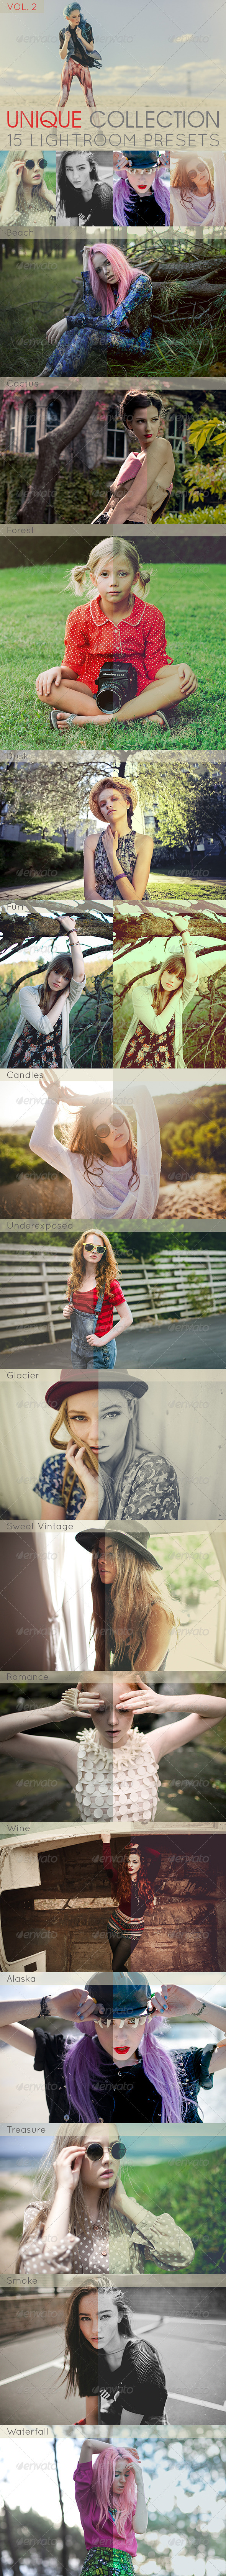 GraphicRiver 15 Unique Lightroom Presets Vol.2 6383207